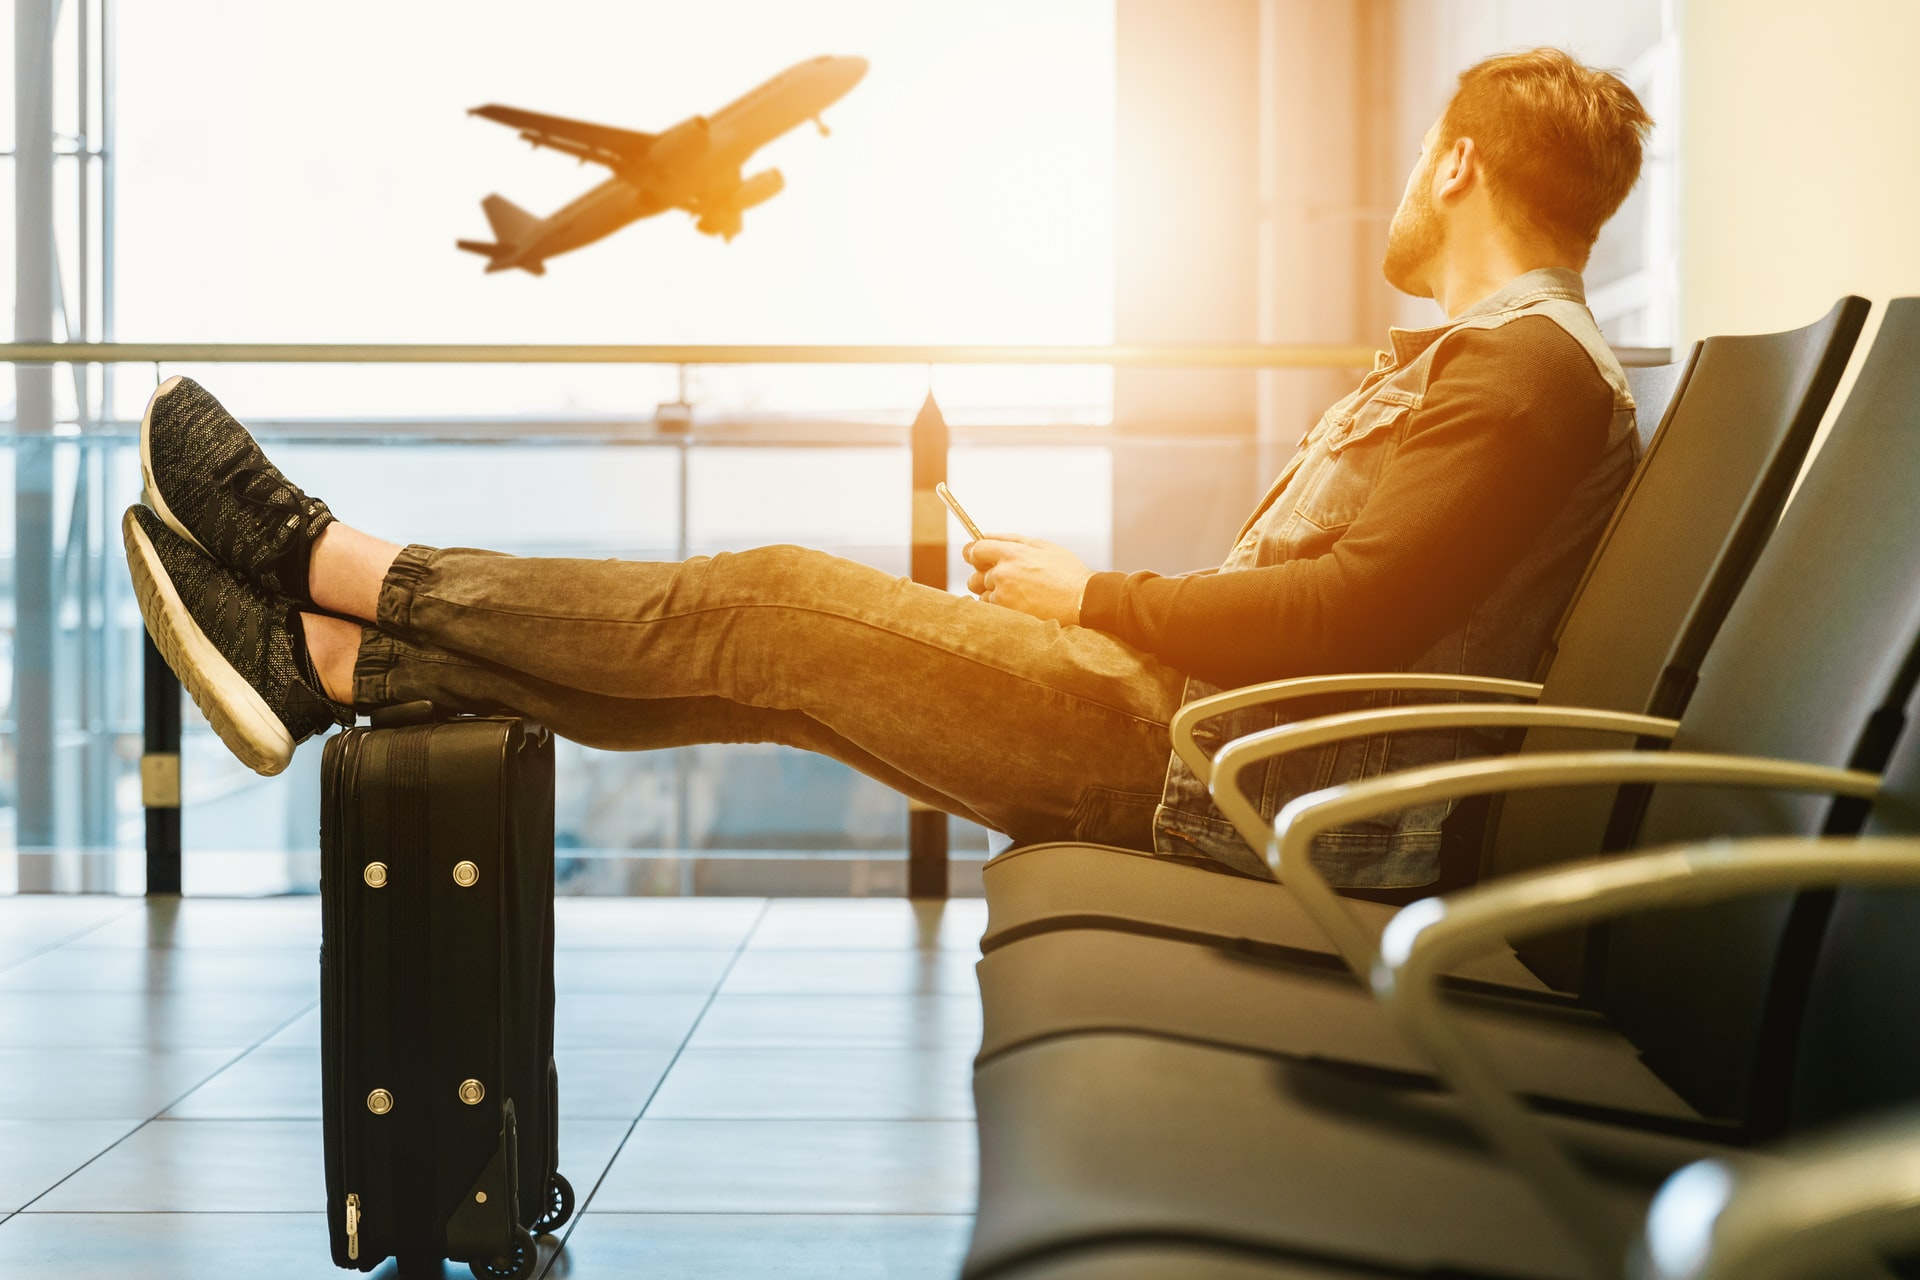 Man sitting in an airport with feet on his luggage looking at an ascending plane